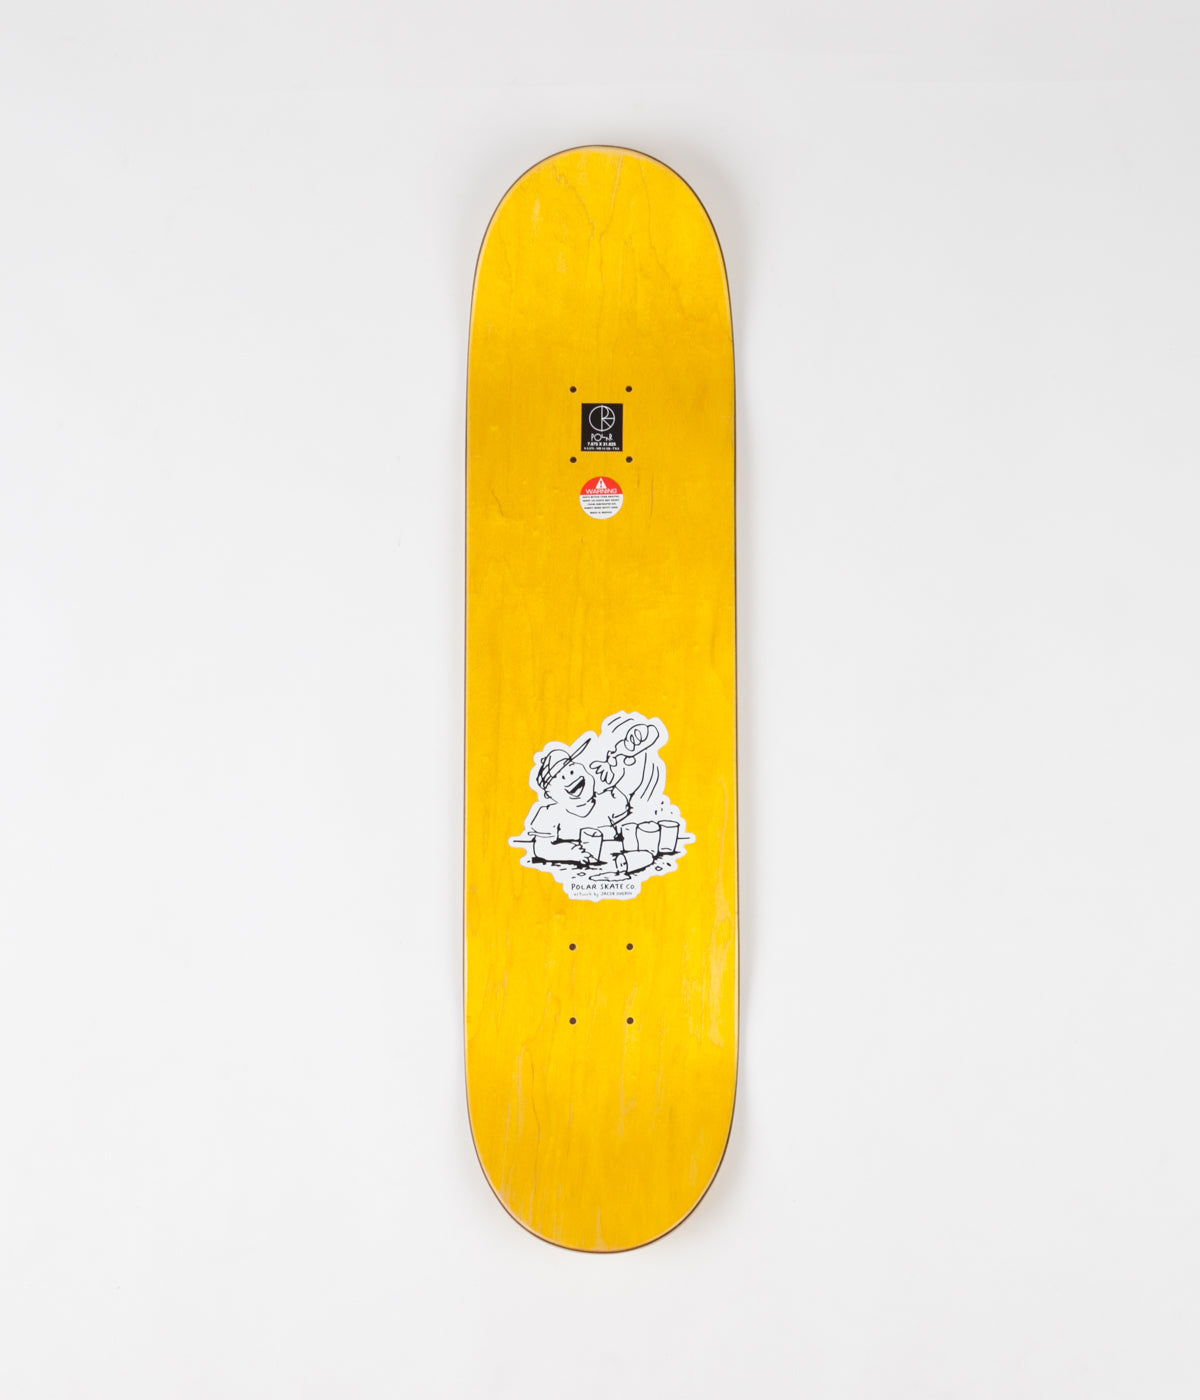 Polar Hjalte Halberg After Work Deck - Yellow - 7.875""